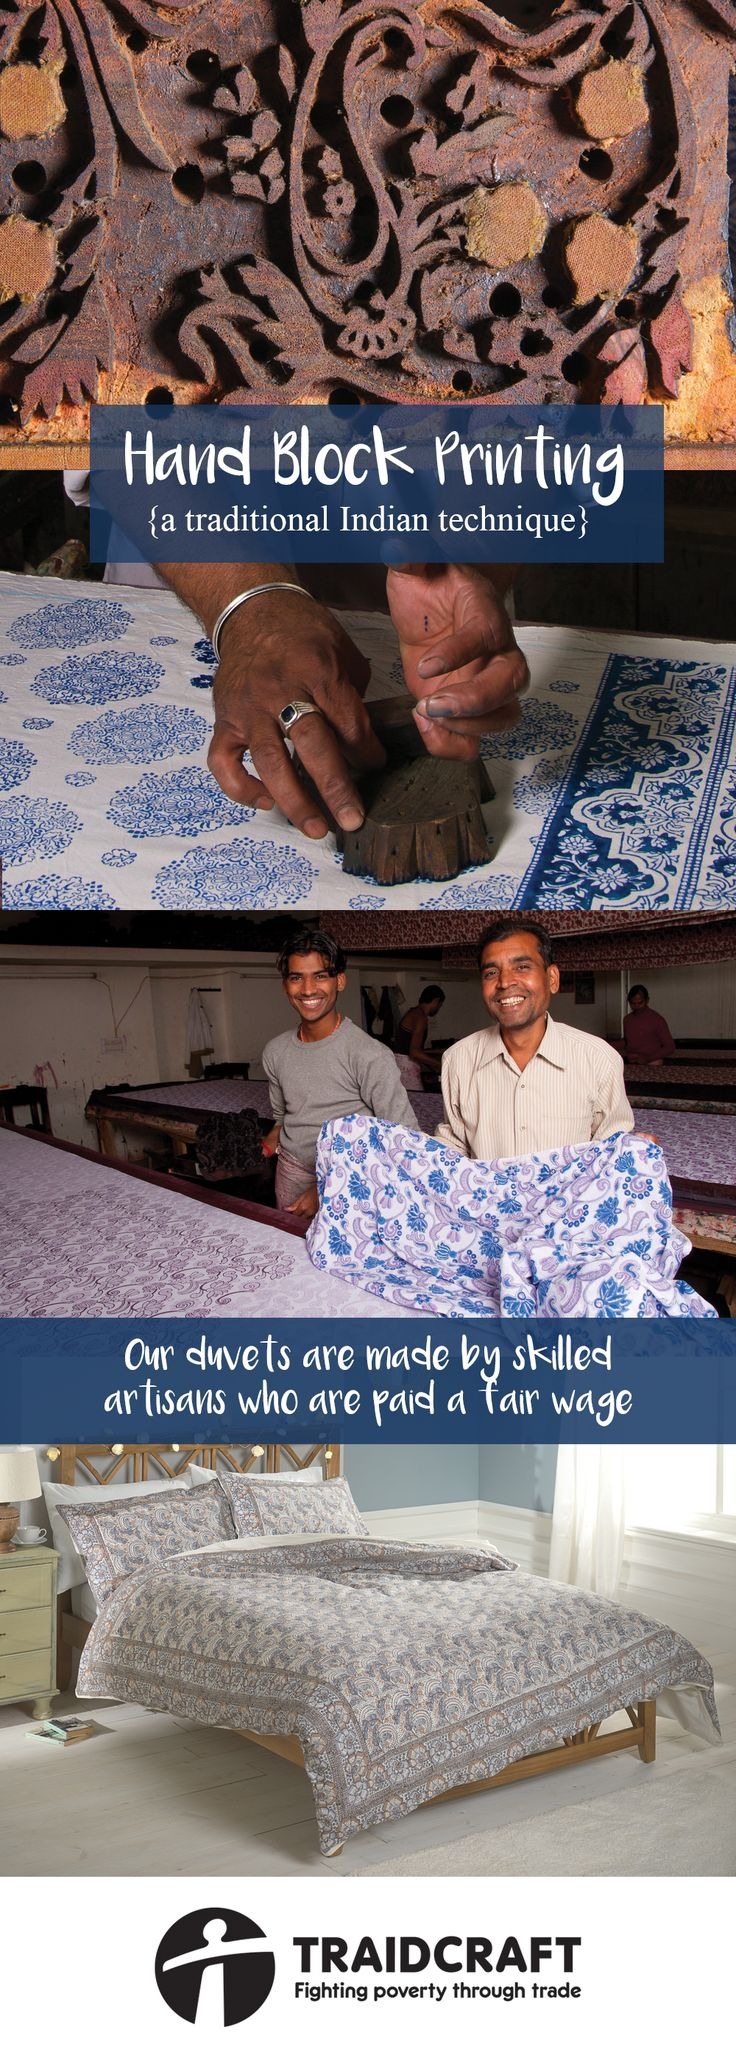 Our incredibly soft fair trade duvet sets are hand block printed by skilled artisans in Jaipur, India. Wood block printing is a traditional technique and a skill which has been passed on through generations. The workers are given a fair wage and improved working conditions. They are very proud of the products they create with great attention to detail.